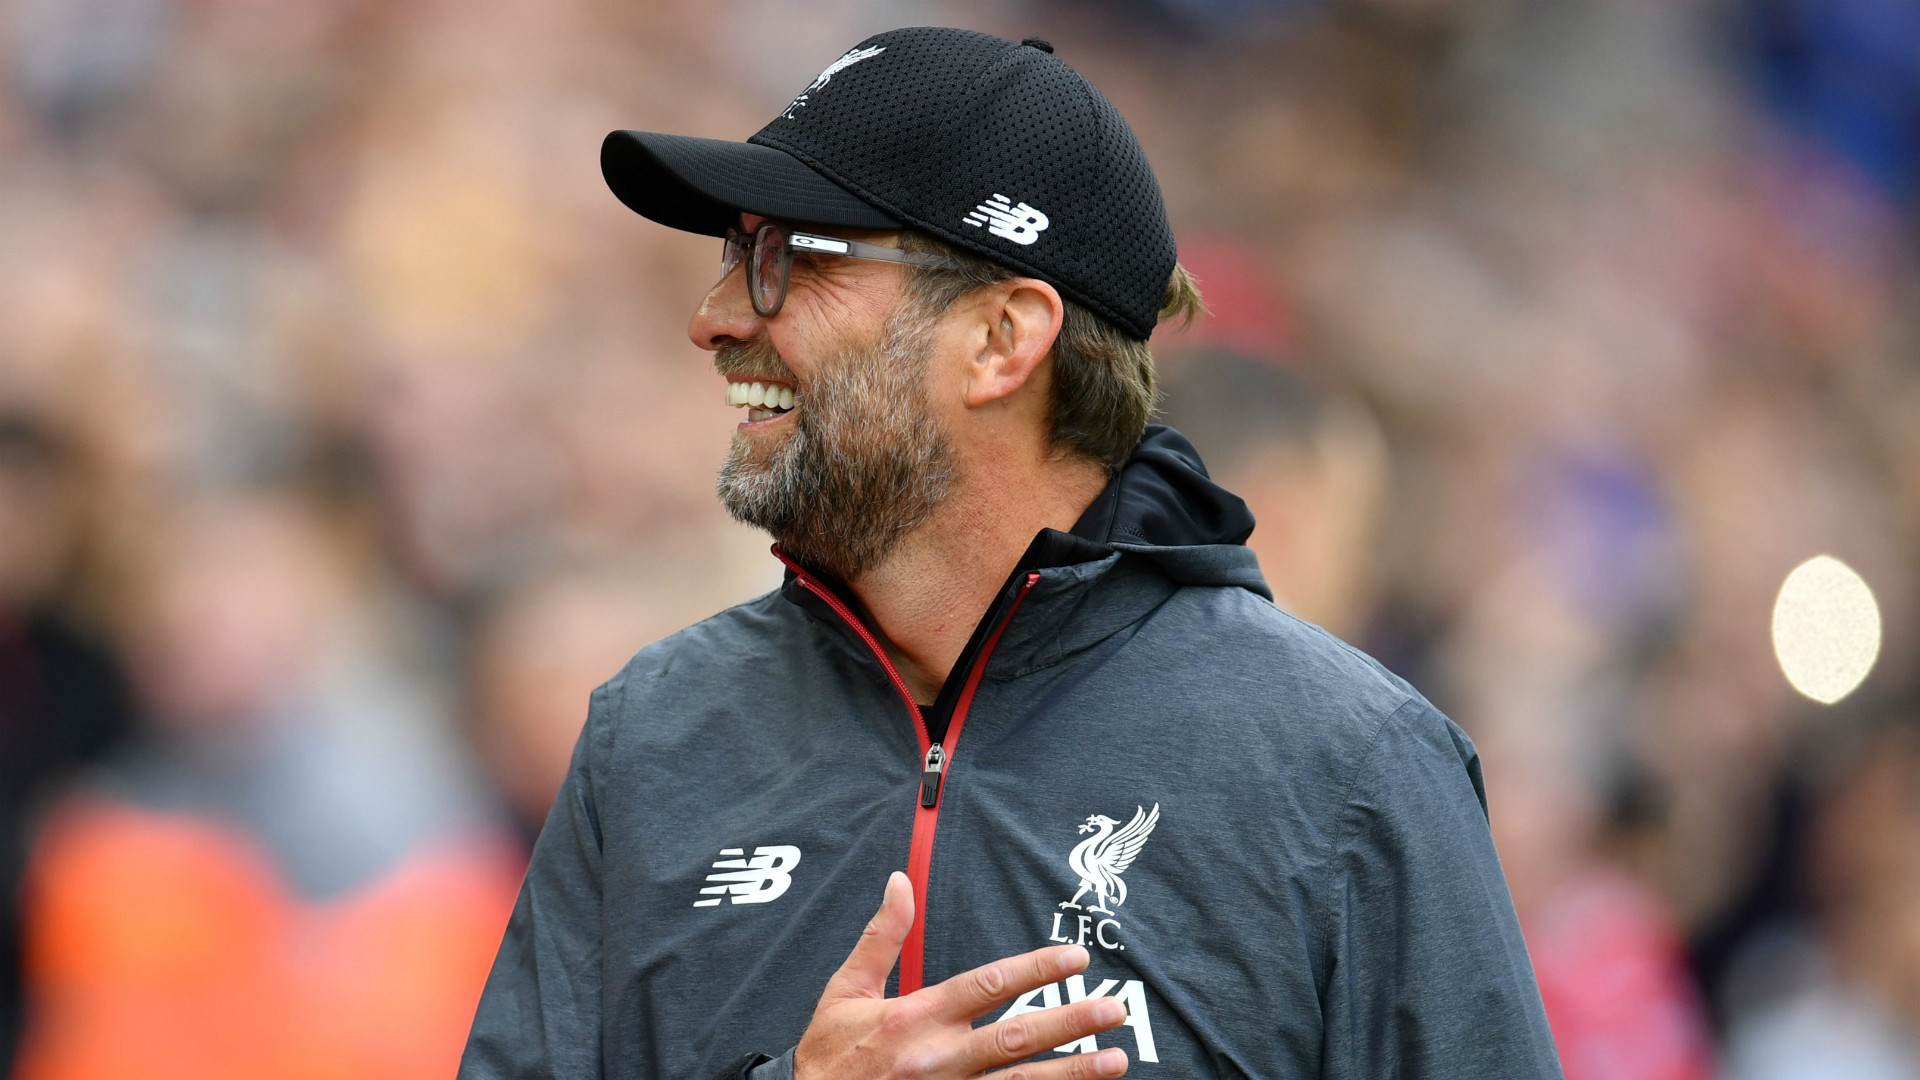 Watch Liverpool Manager Klopp Donate R190,000 To South